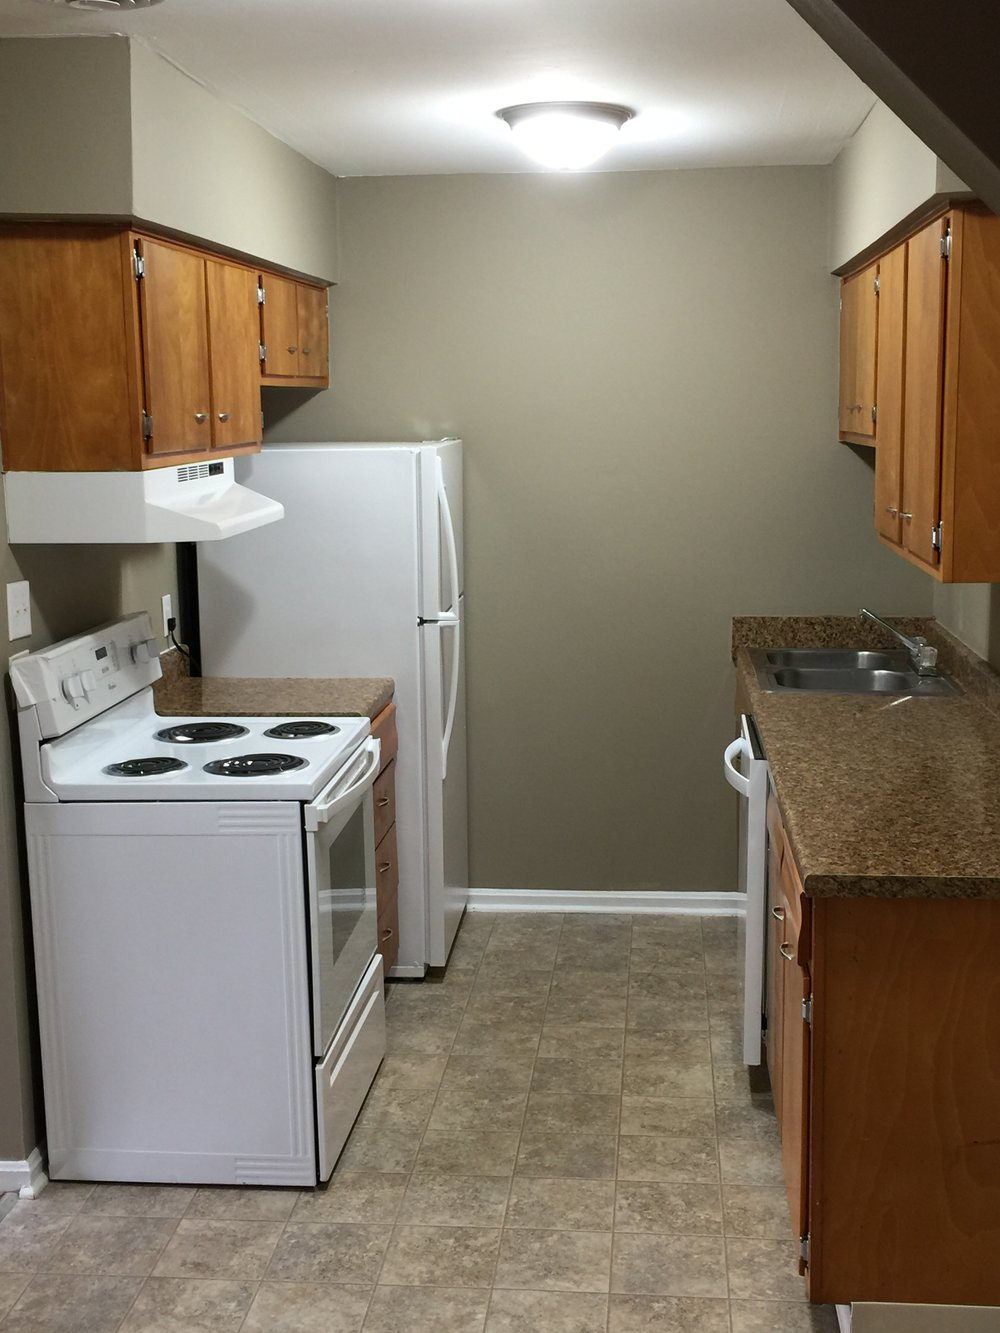 1 Bedroom Kitchen 4.JPG